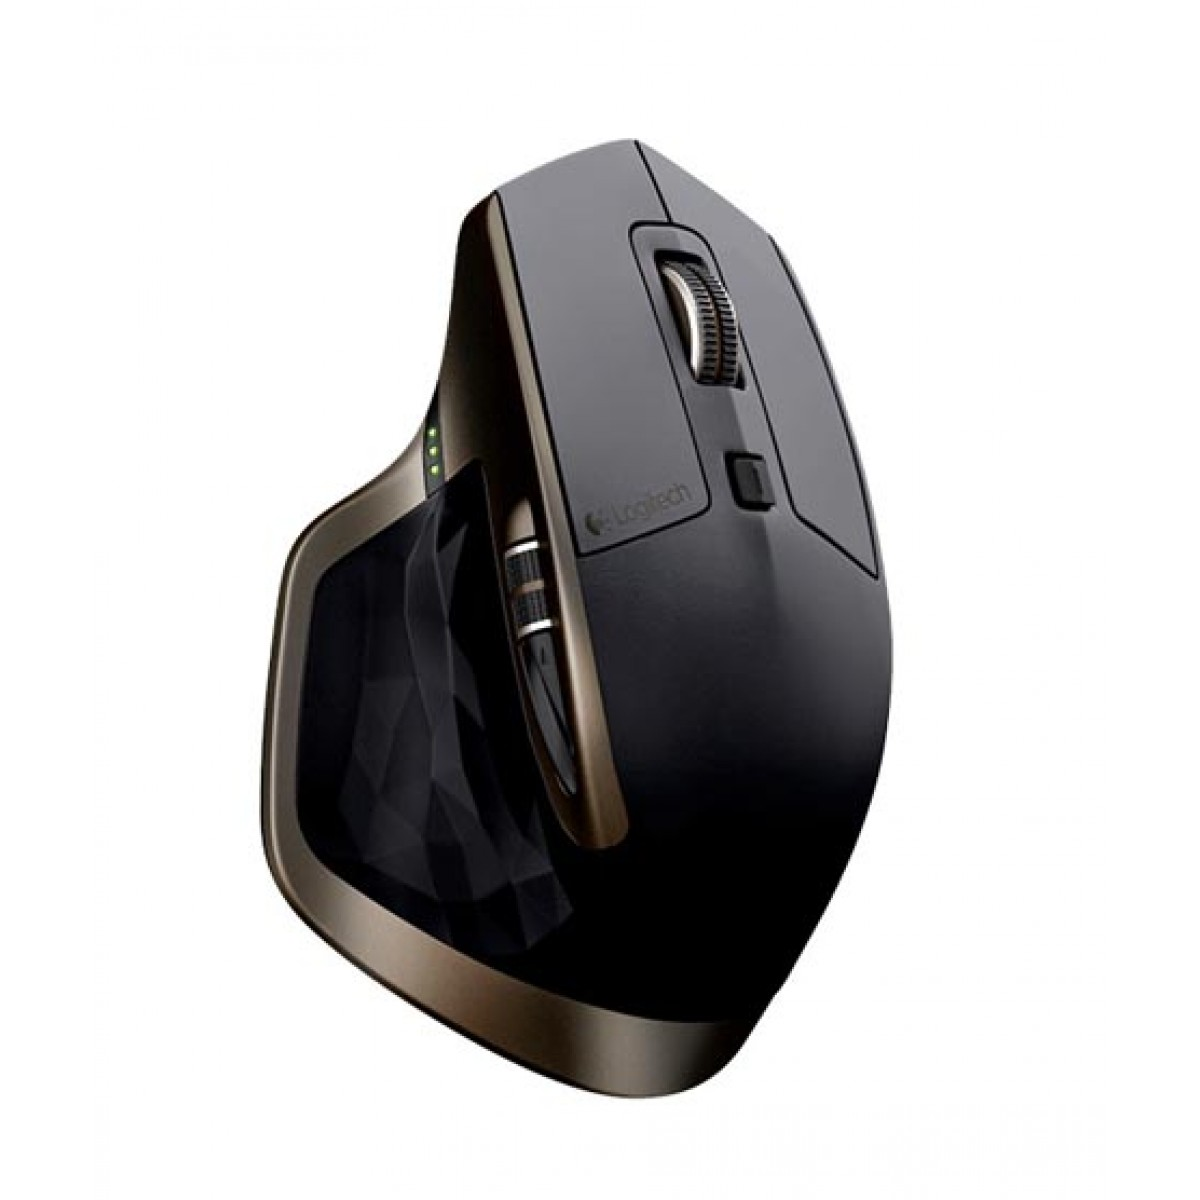 35fc595b50f Logitech MX Master Wireless Mouse Price in Pakistan | Buy Logitech Mouse |  iShopping.pk